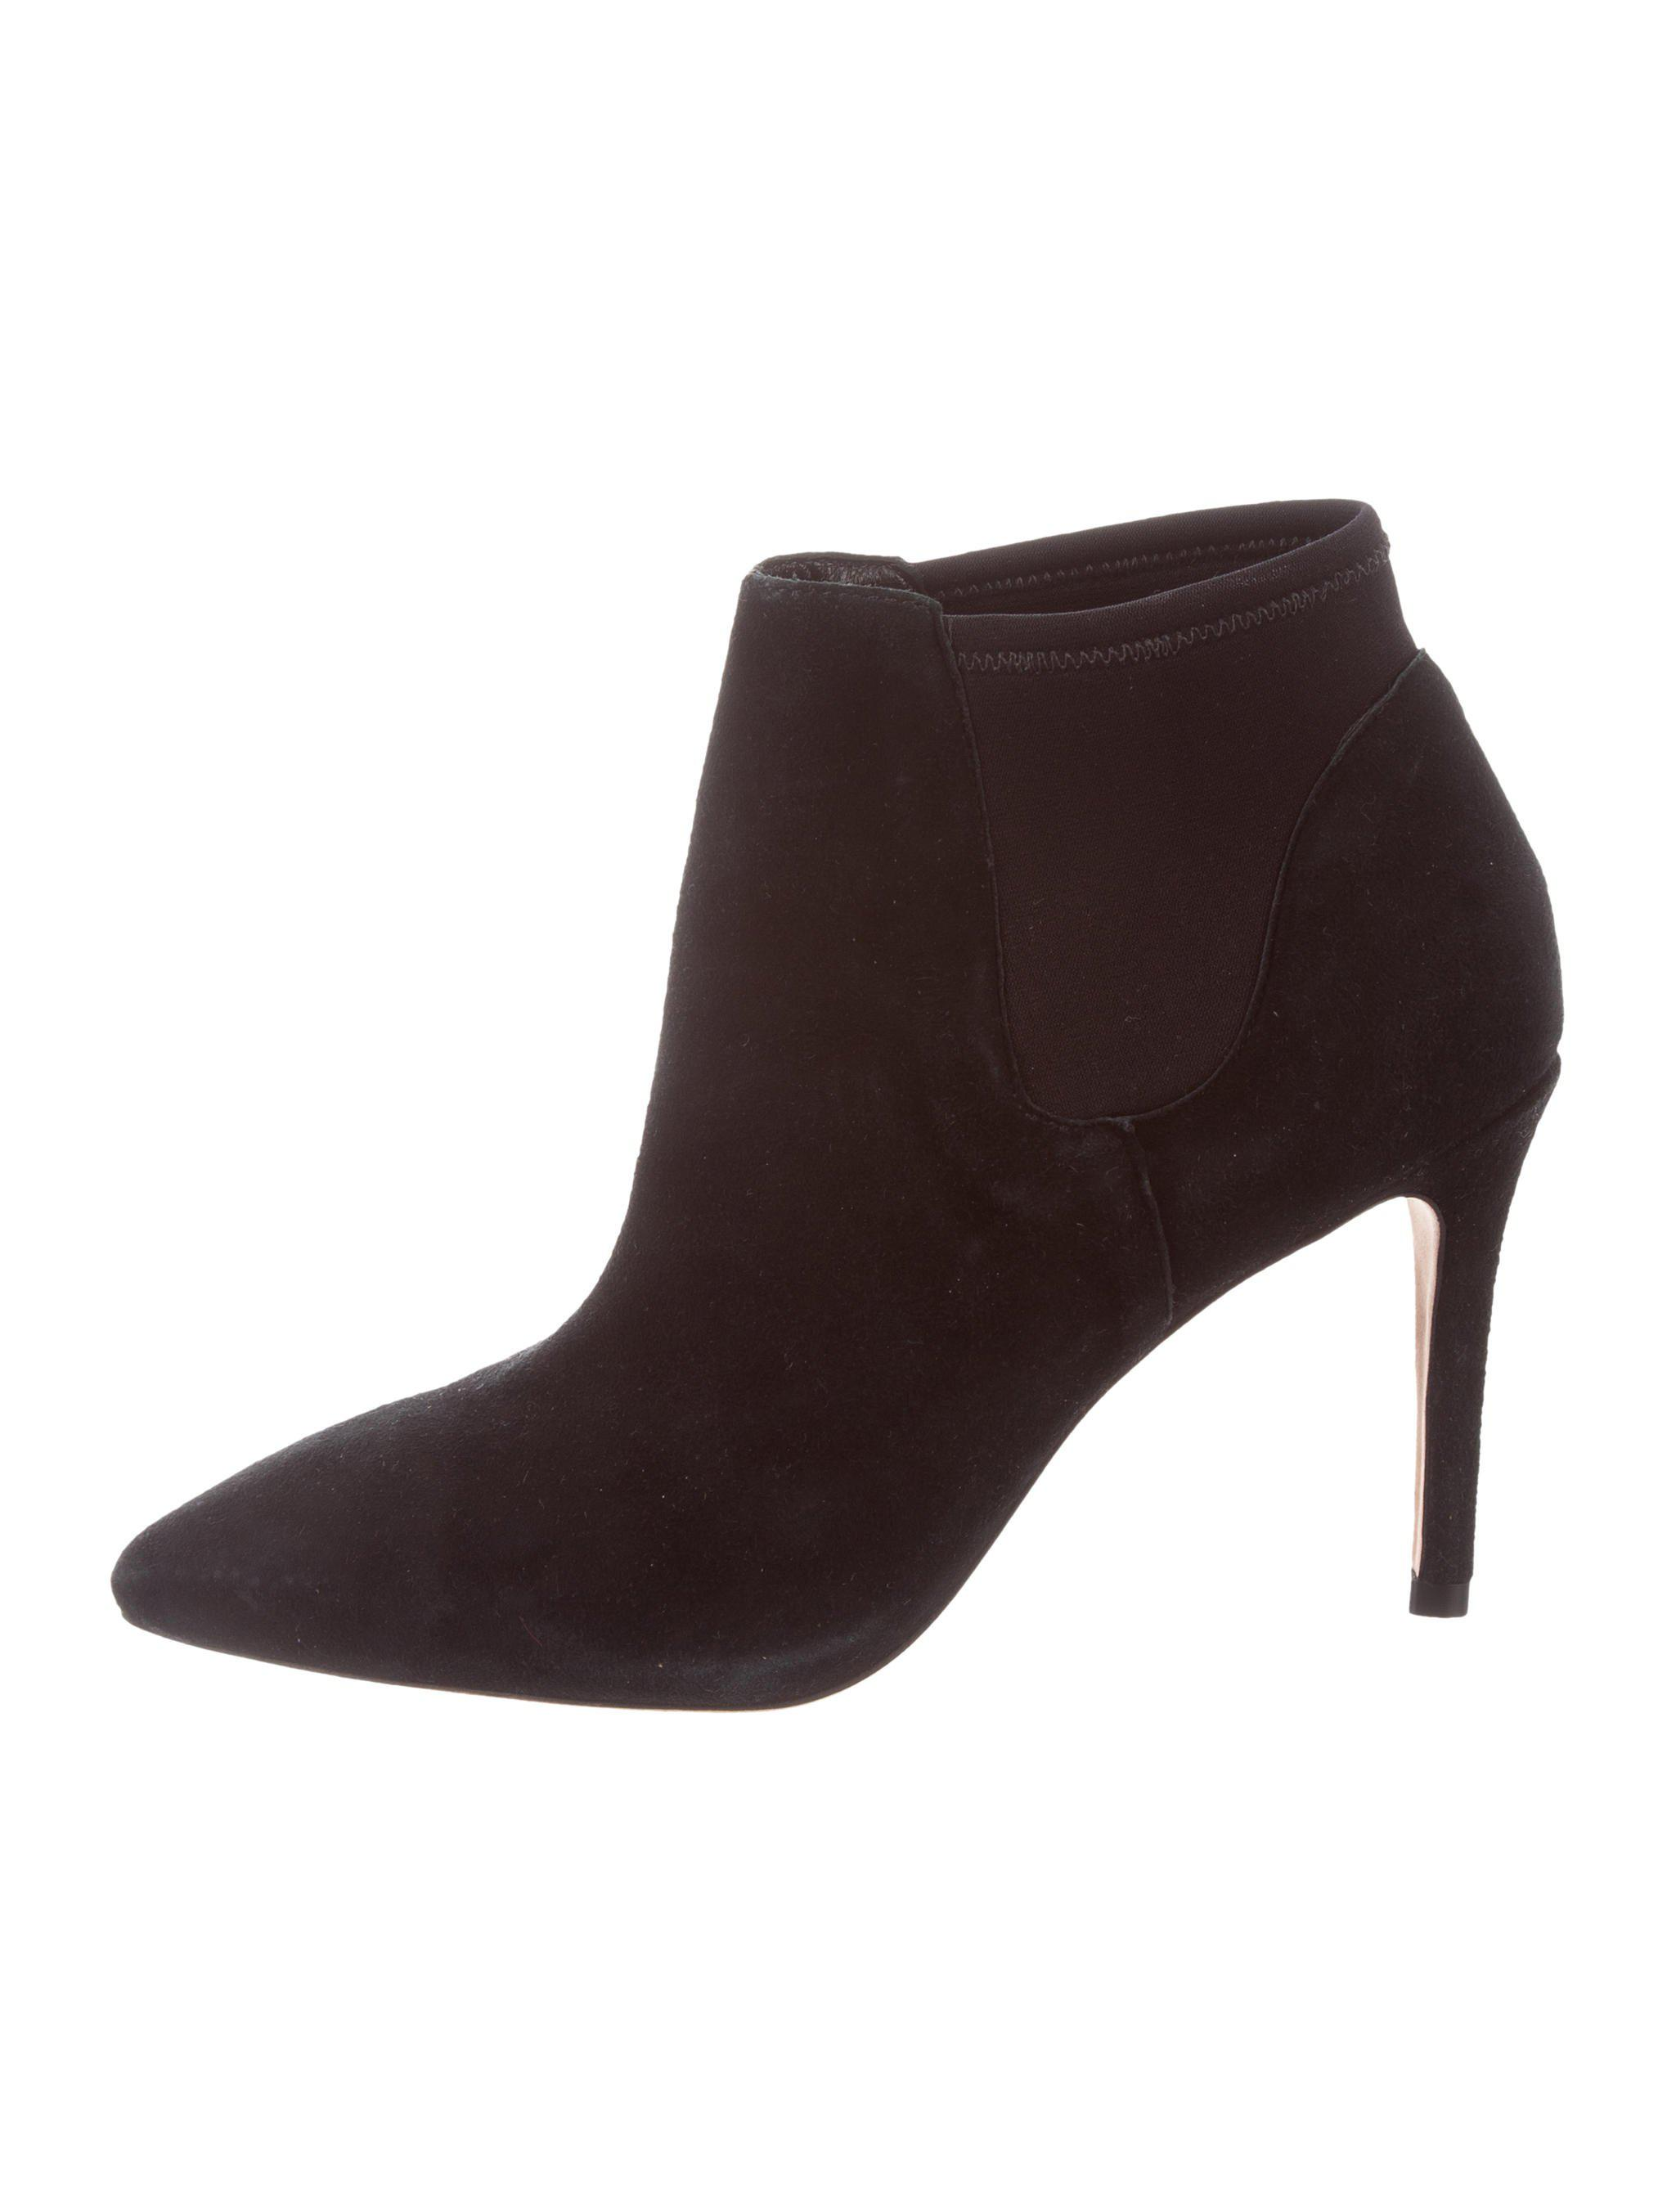 release dates for sale Loeffler Randall Ponyhair Pointed-Toe Booties new styles nW1mkkZTVP